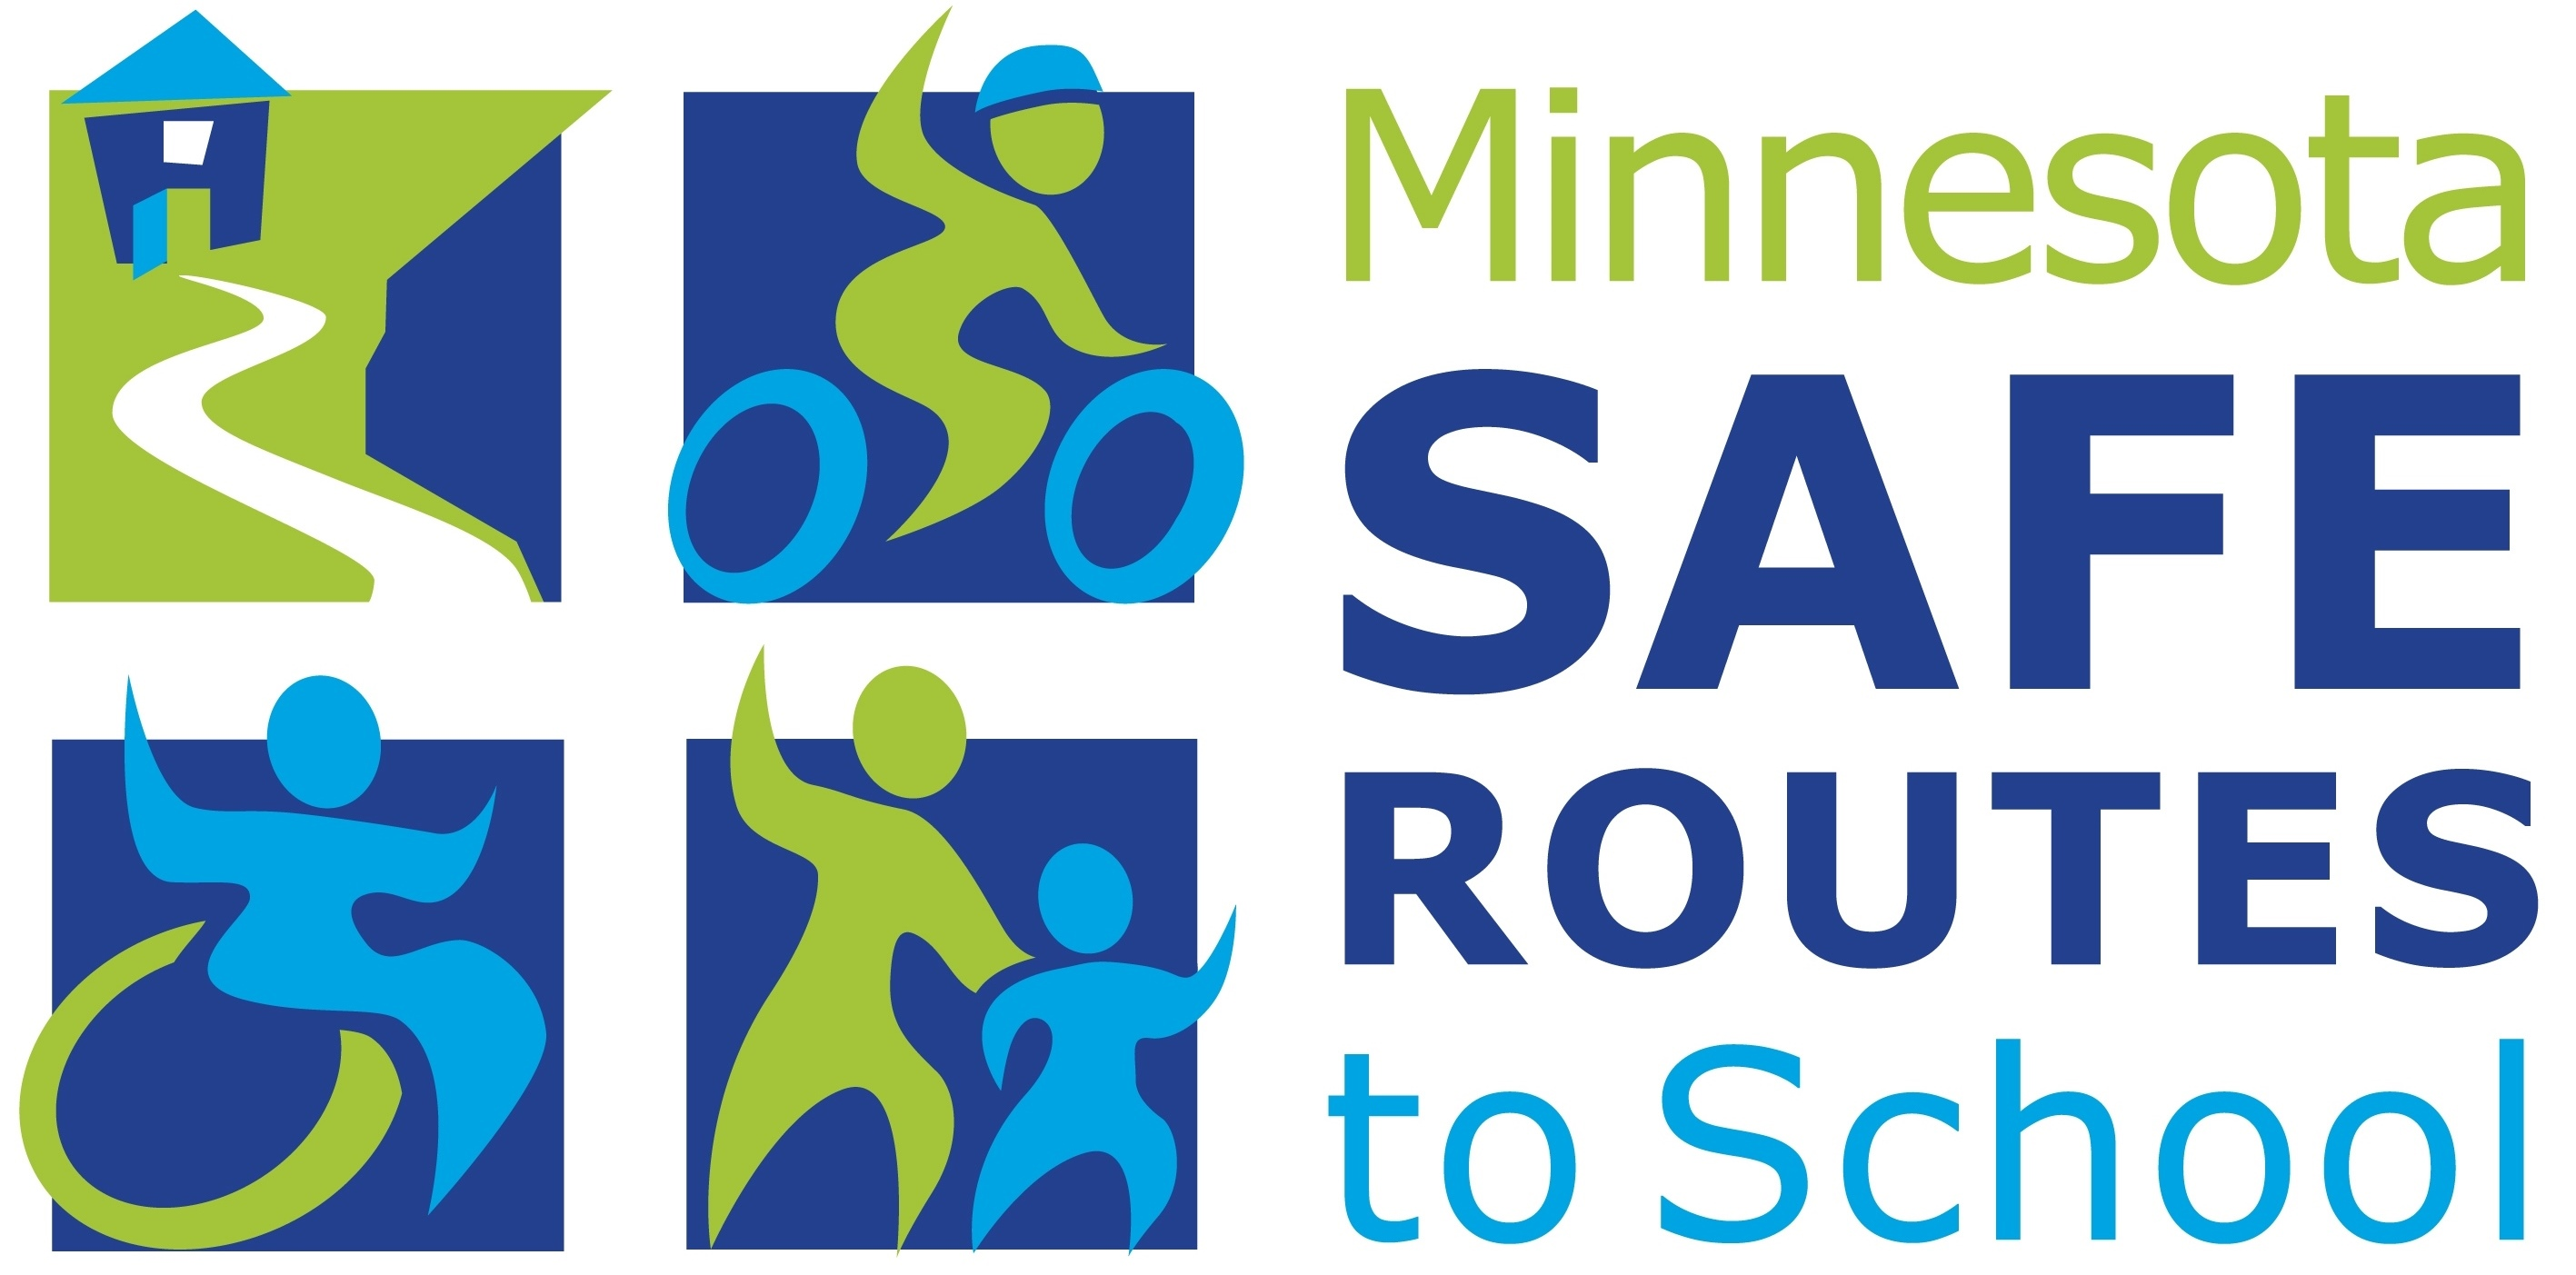 Minnesota Safe Routes to School logo